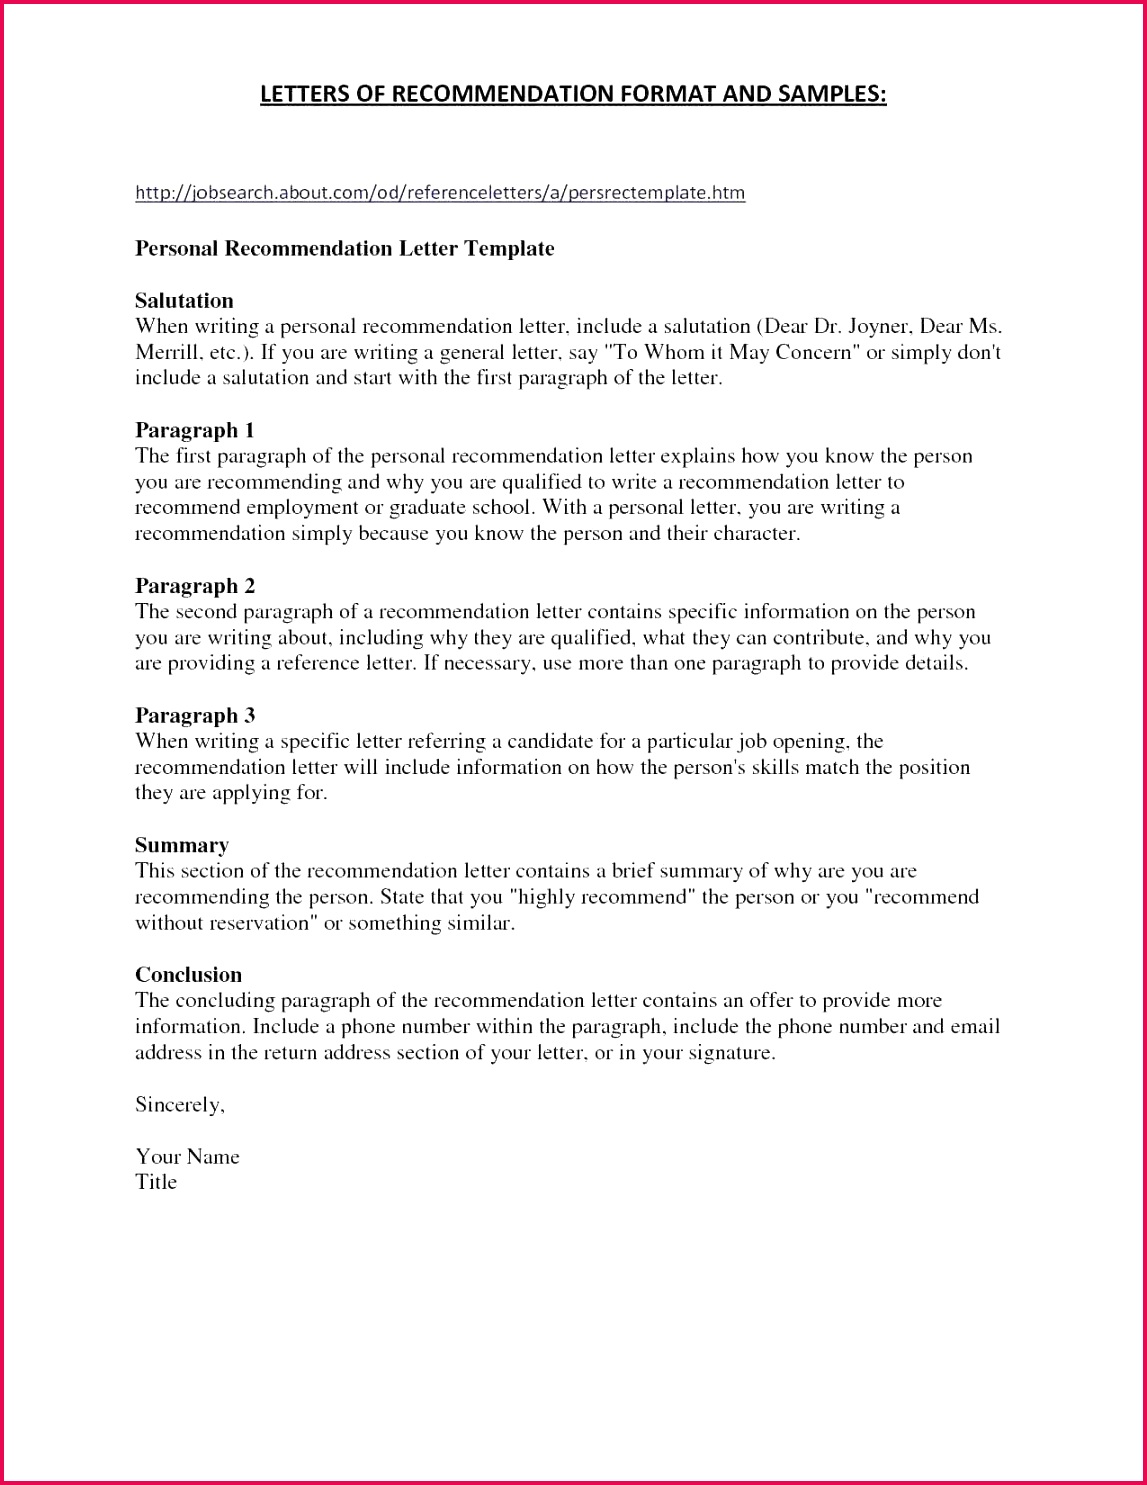 sample salary certificate format in ms word free collection 52 microsoft office template donation letter new professional